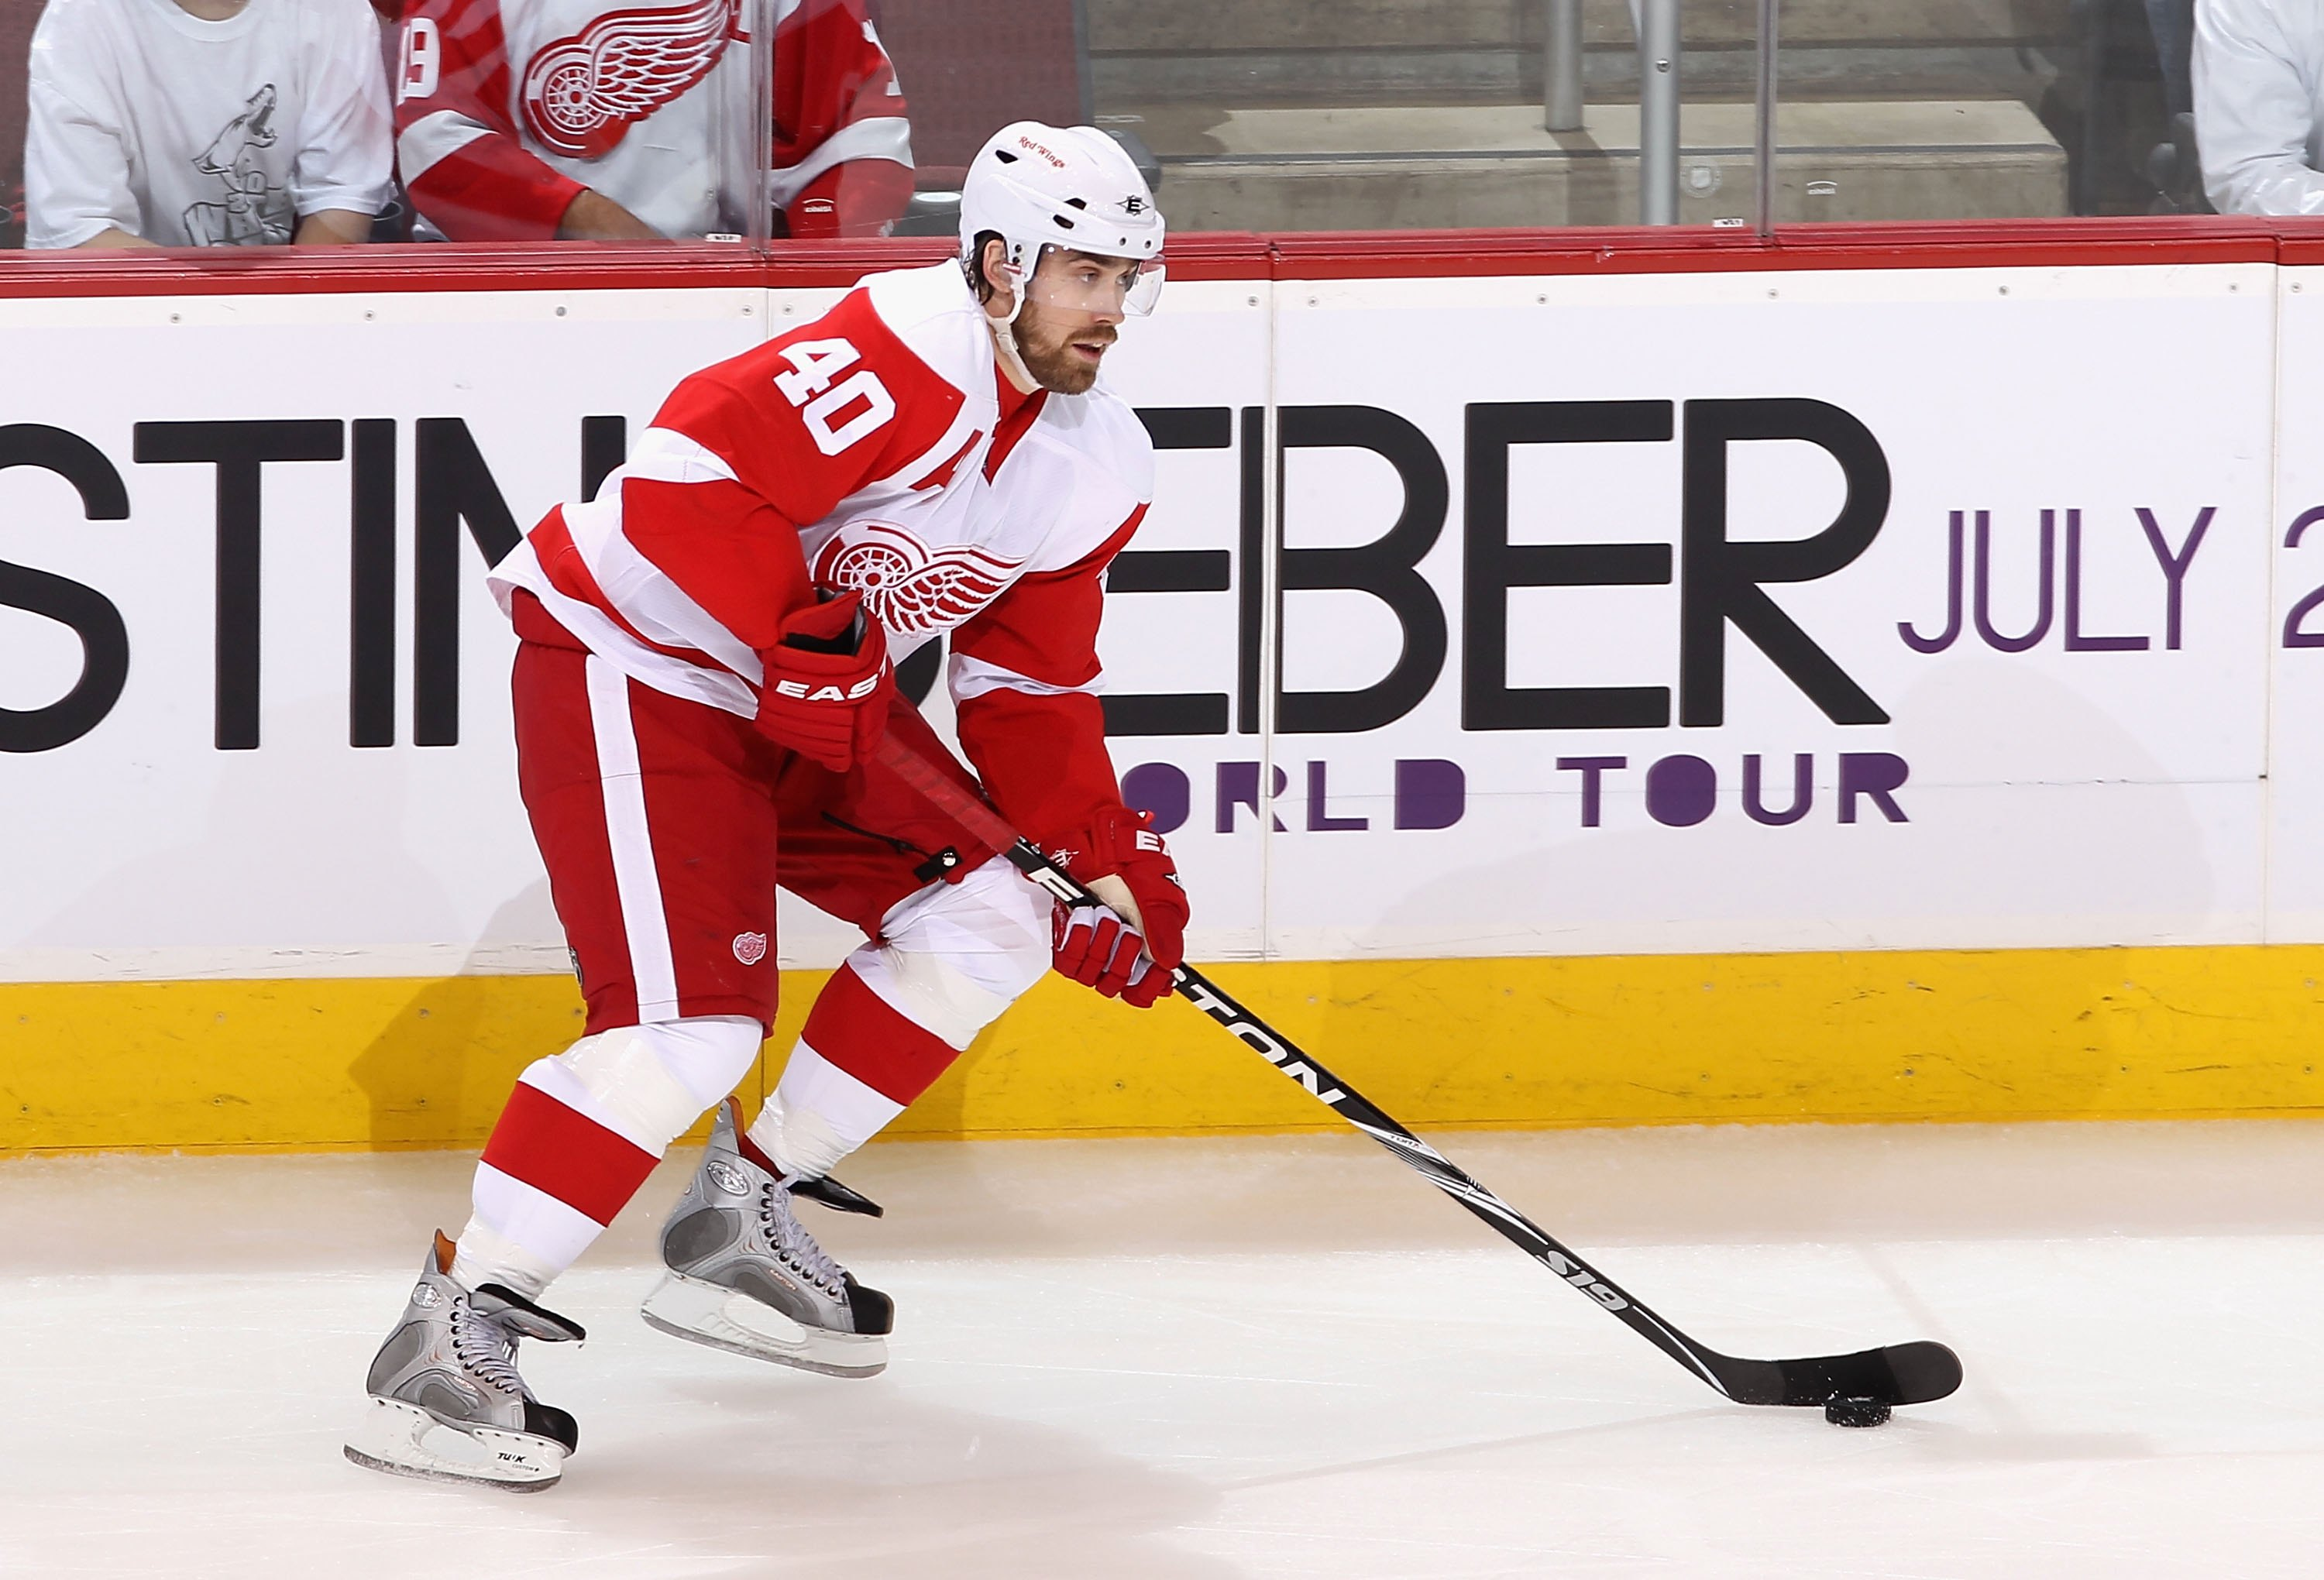 GLENDALE, AZ - APRIL 14:  Henrik Zetterberg #40 of the Detroit Red Wings skates with the puck in Game One of the Western Conference Quarterfinals against the Phoenix Coyotes during the 2010 NHL Stanley Cup Playoffs at Jobing.com Arena on April 14, 2010 in